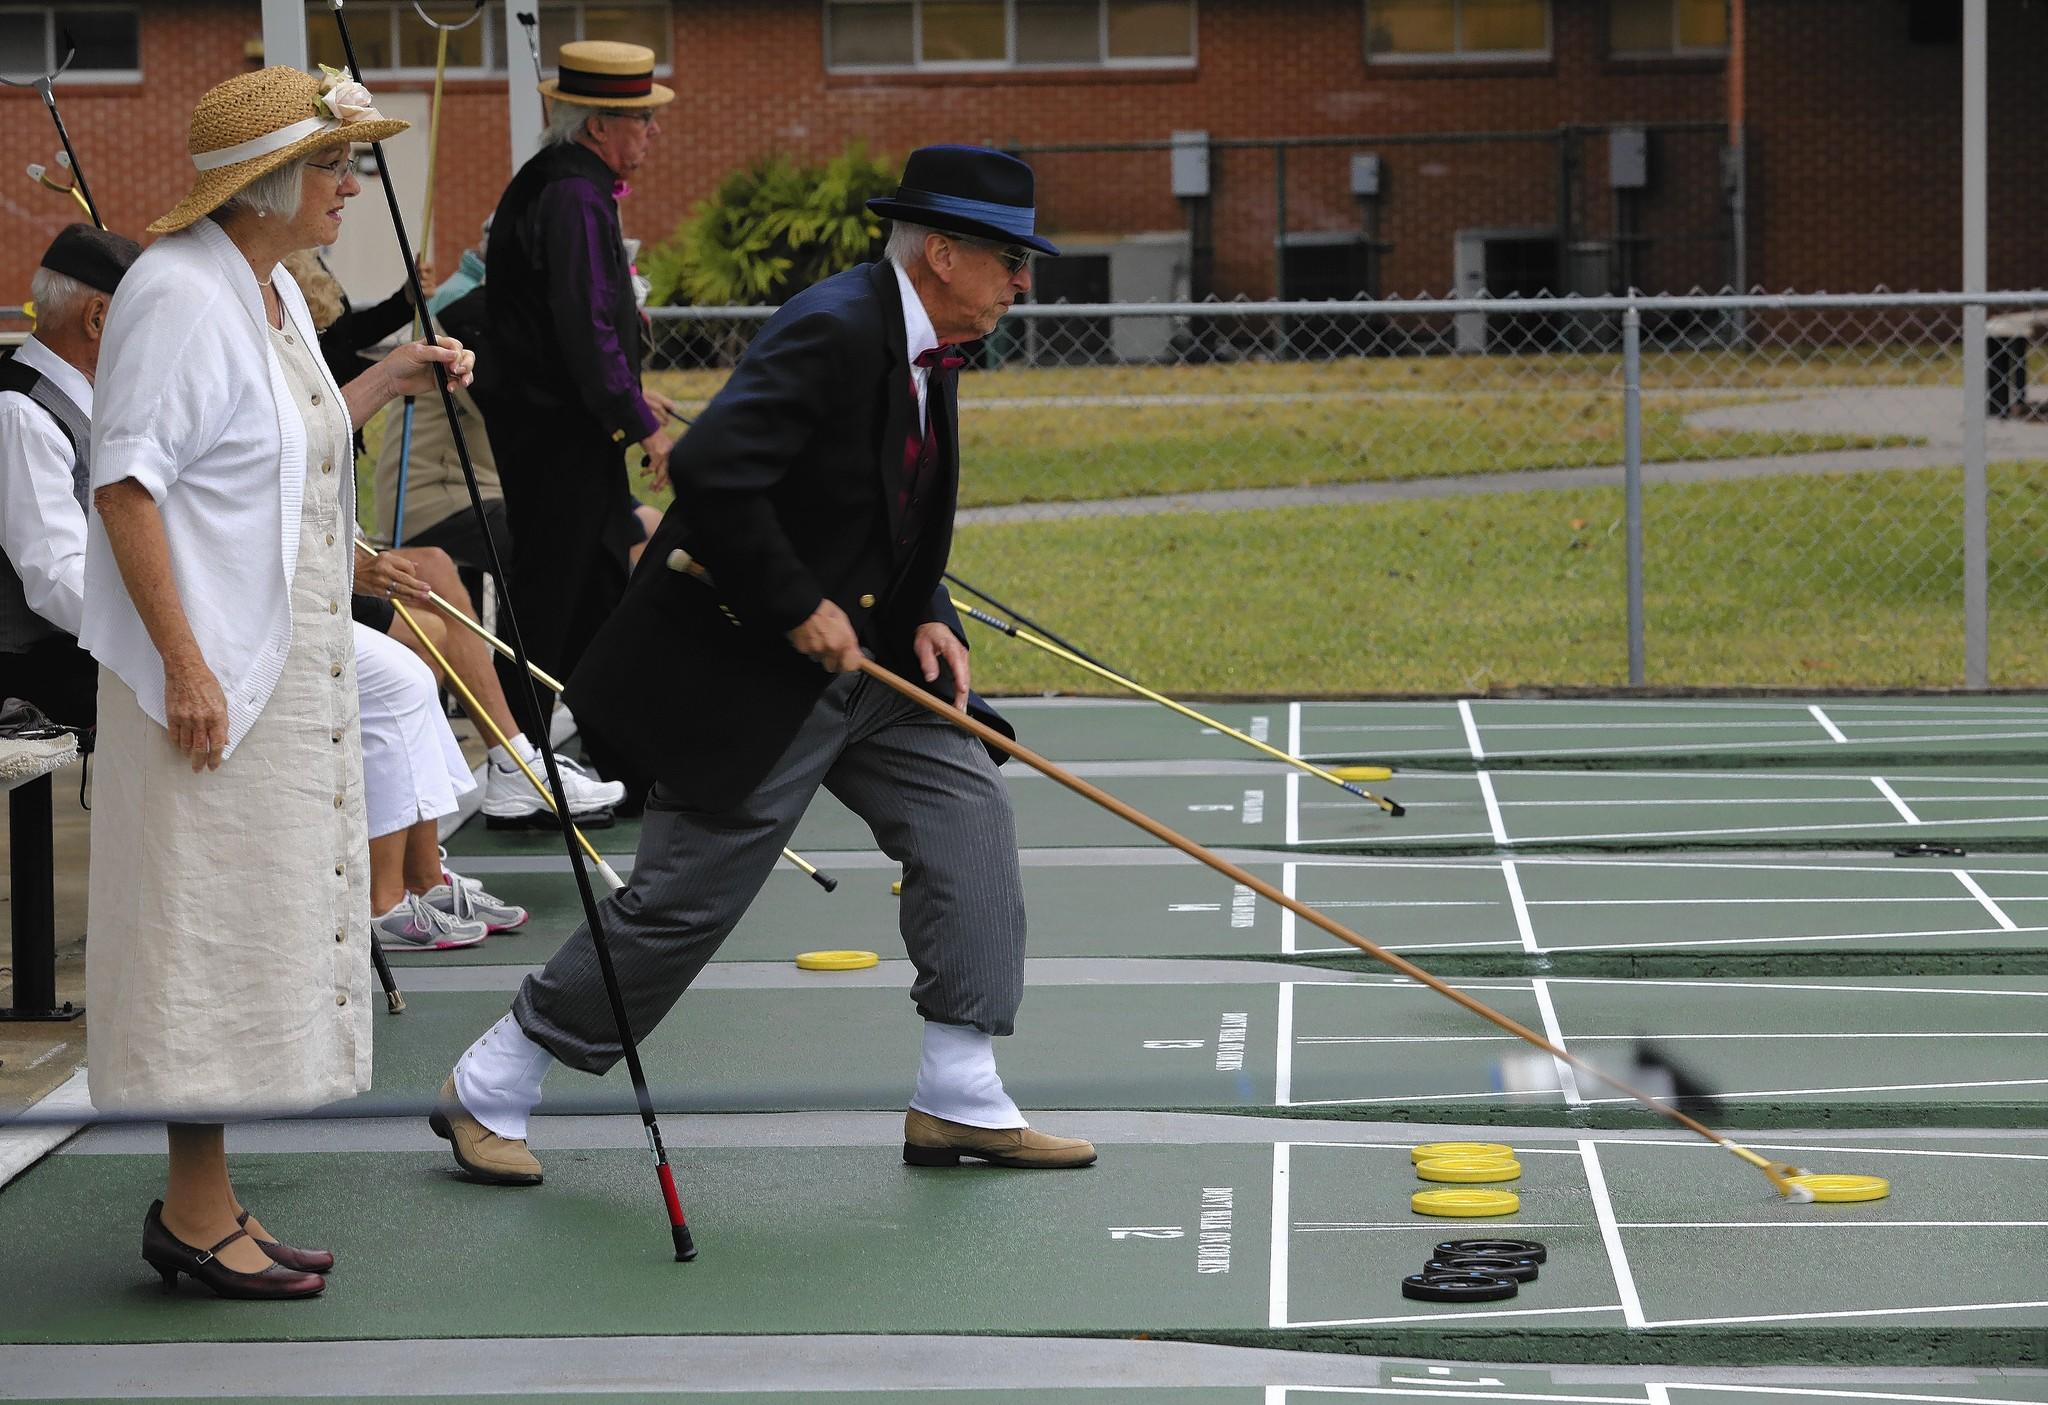 Shuffleboard players dress in vintage clothing to celebrate the 100-year anniversary of the game, during a tournament hosted by the Tavares Shuffleboard Club on Friday, December 27, 2013.